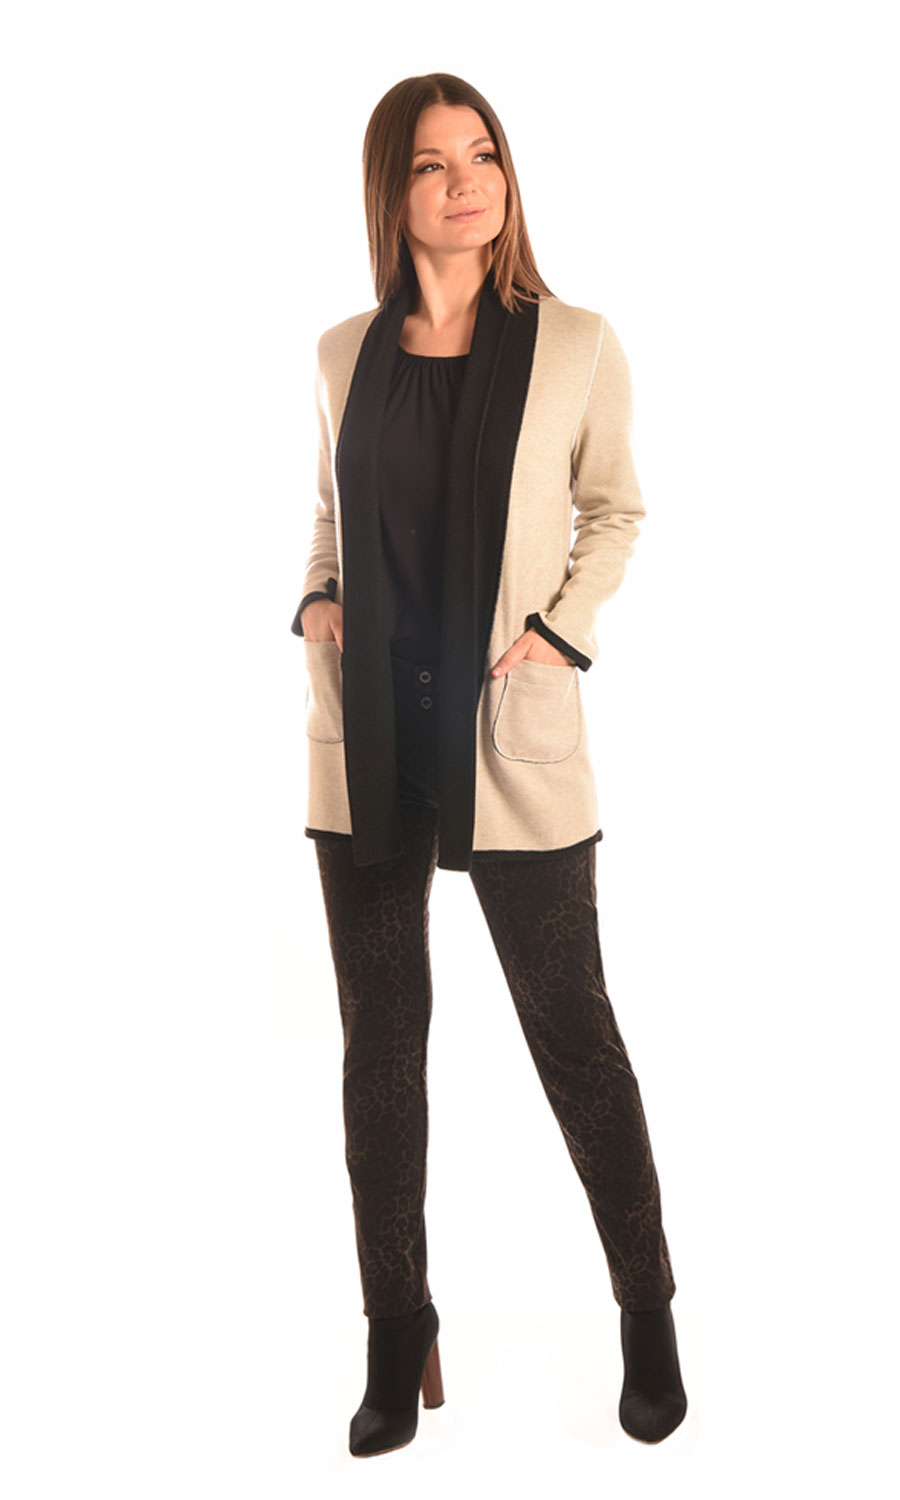 495-Two-Sided-Knit-Reversible-Cardigan-(Oatmill)-309A-Stretch-Ponte-9in-Rise-Ankle-Skinny-Jean